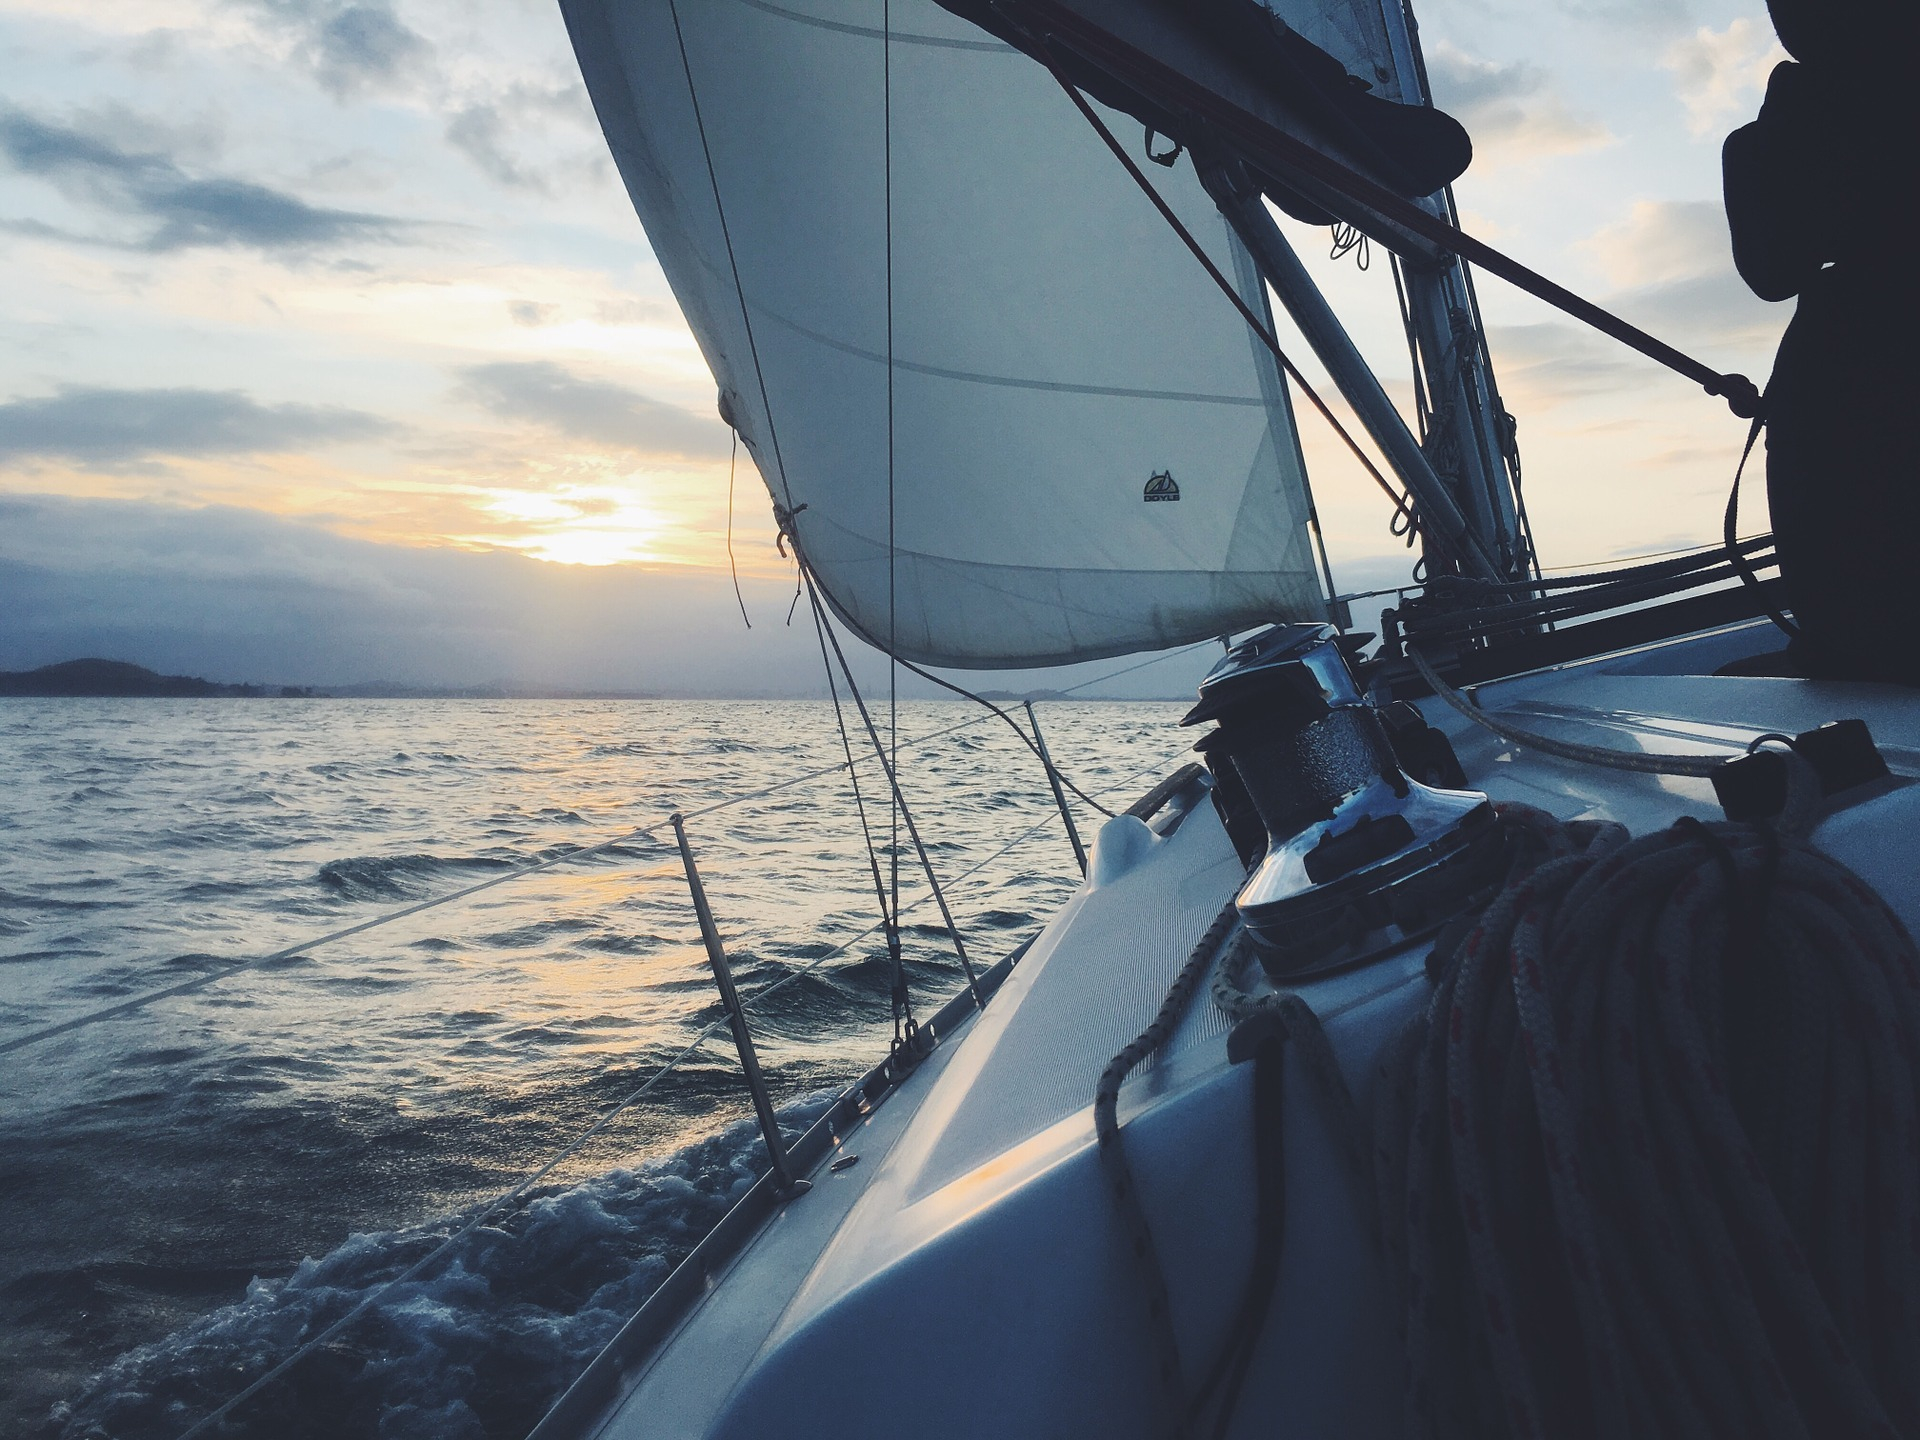 The Great Lakes have ideal open water sailing conditions.